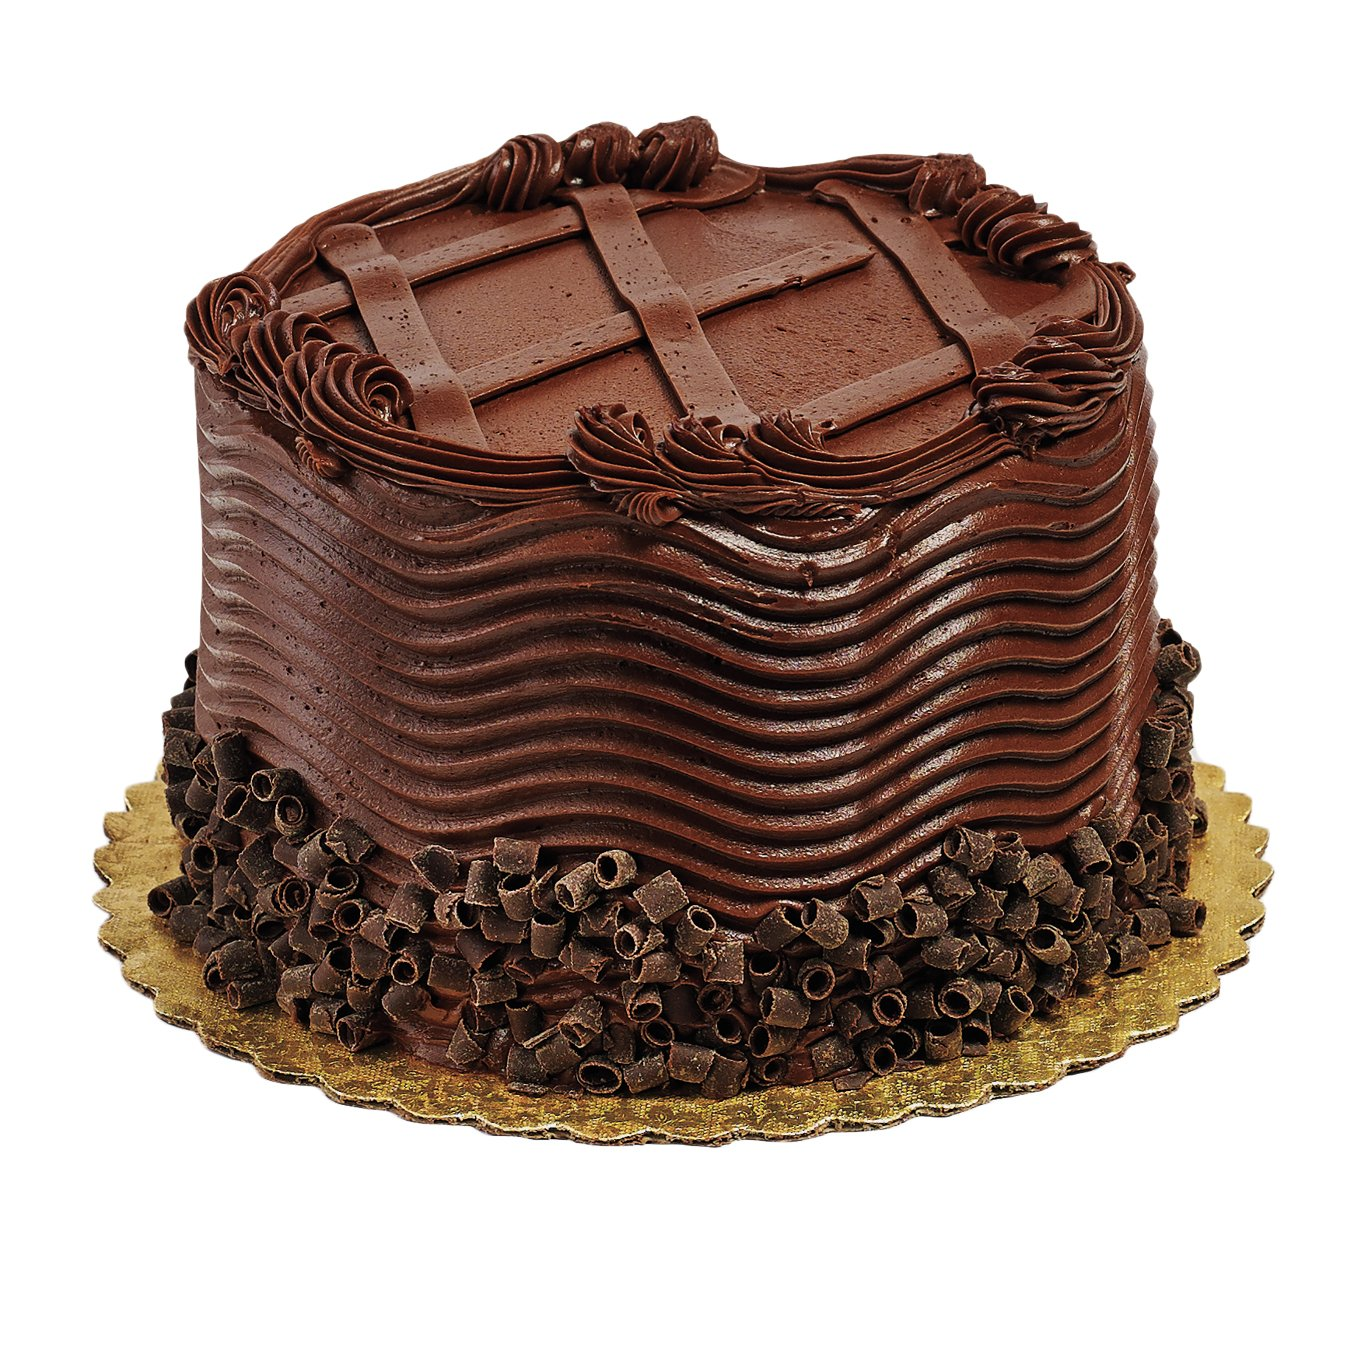 Decorated German Chocolate Cake Gourmet Cakes Desserts At Heb Easy Quick Online Ordering